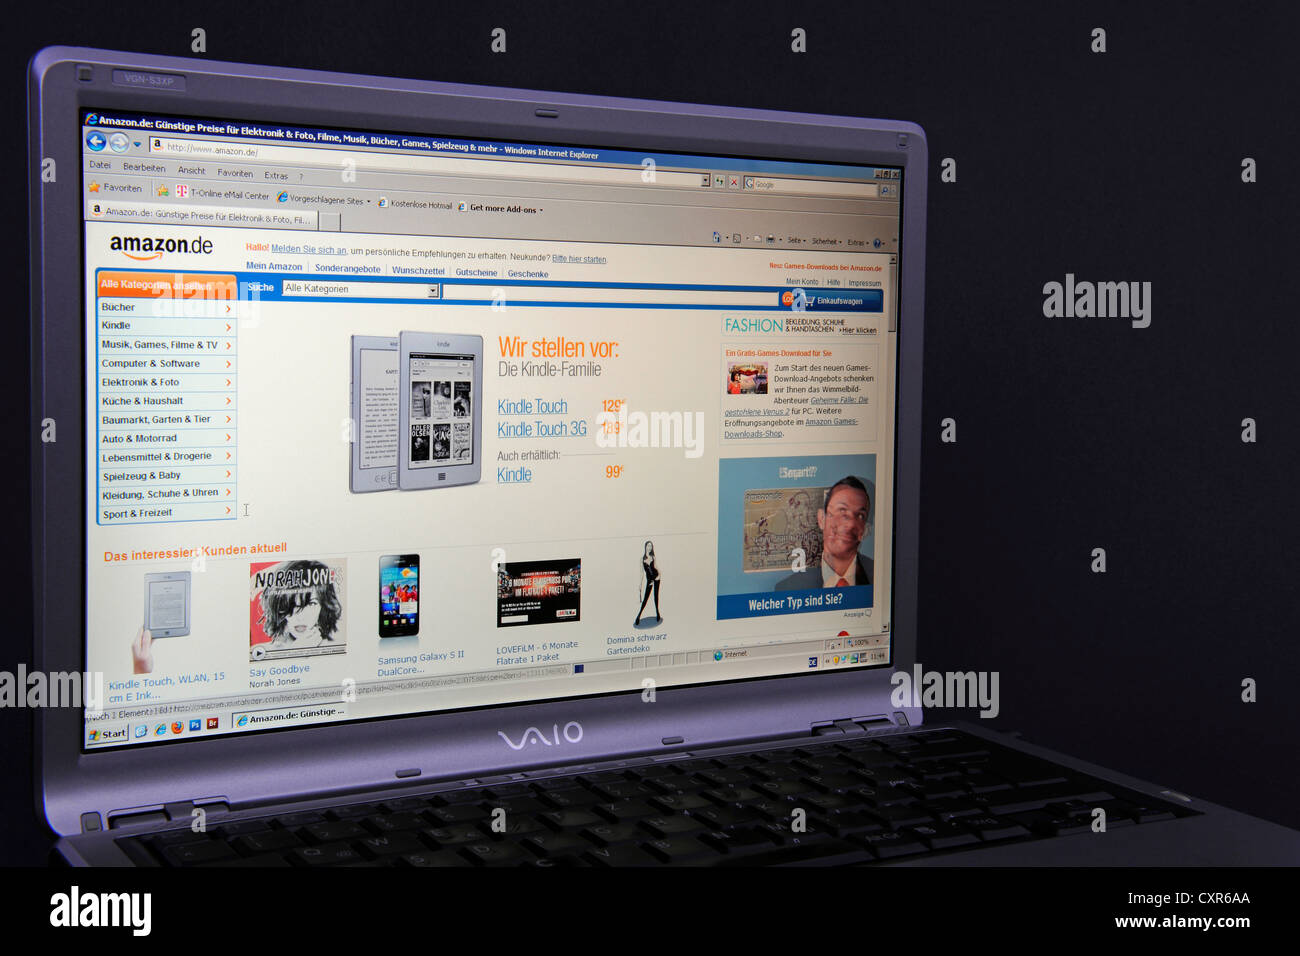 Website Amazon Webpage On The Screen Of A Sony Vaio Laptop An